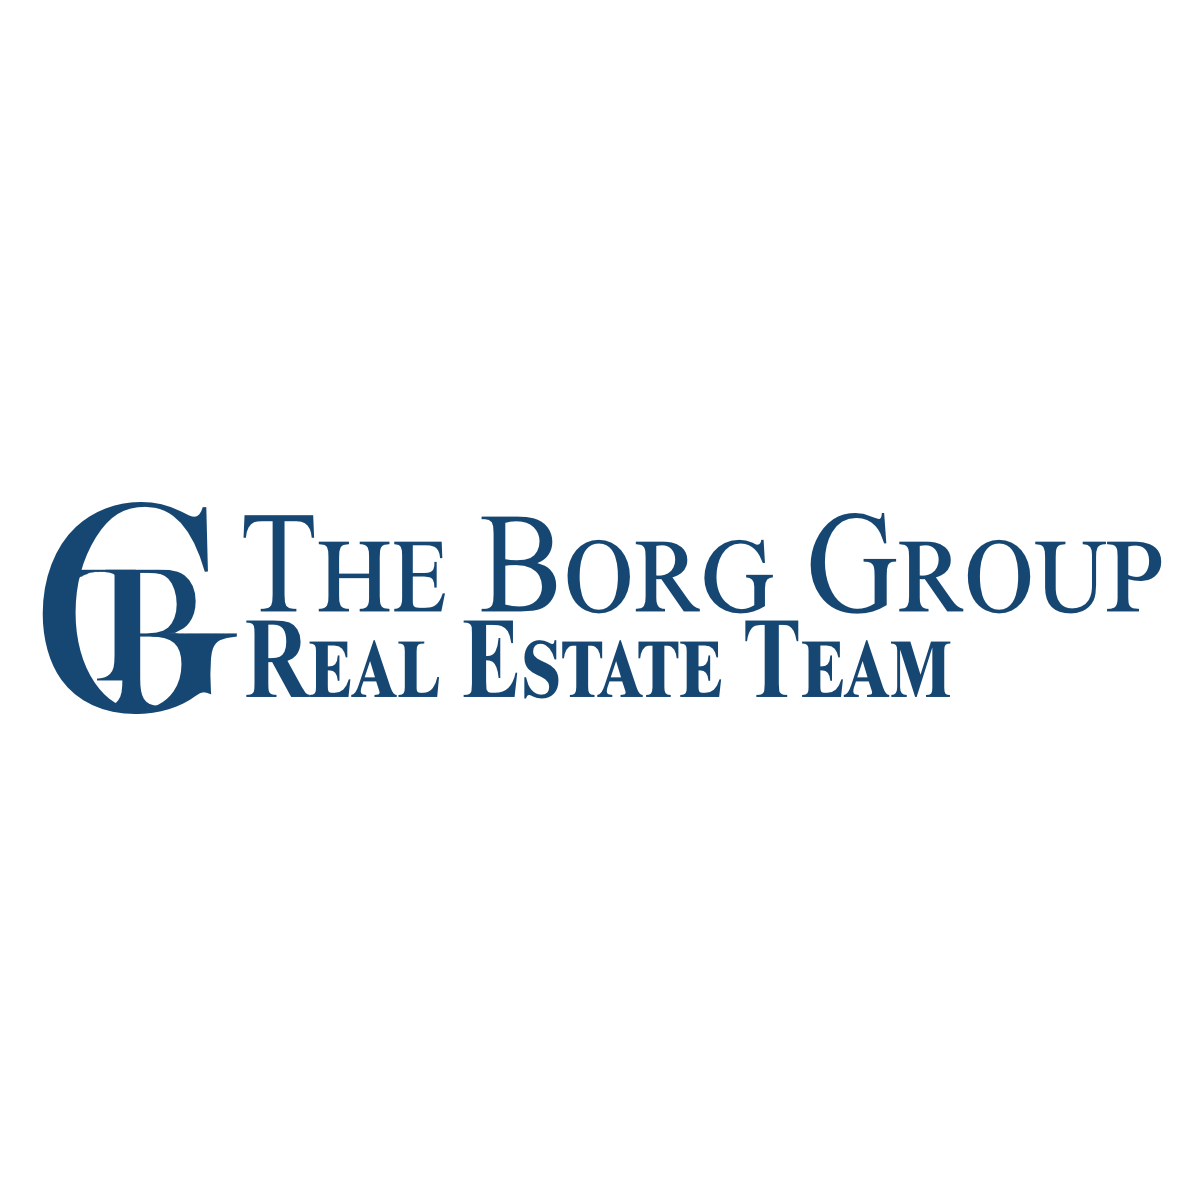 The Borg Group